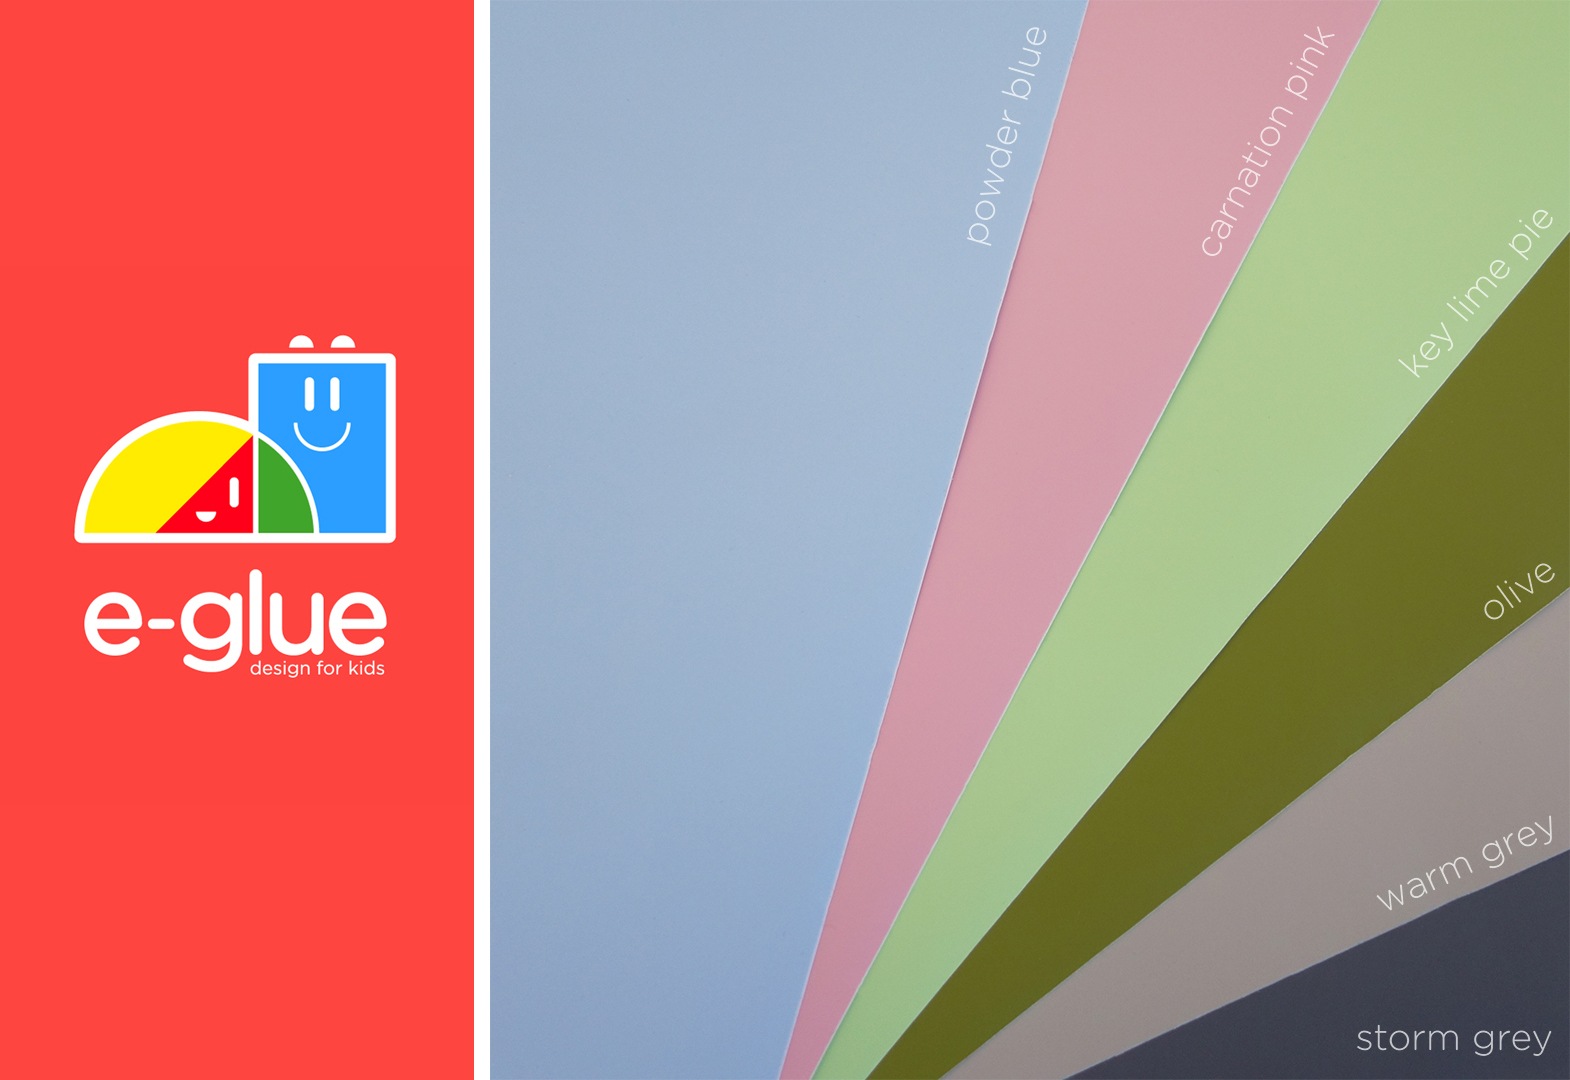 New colors for your kids wall decals E-Glue !